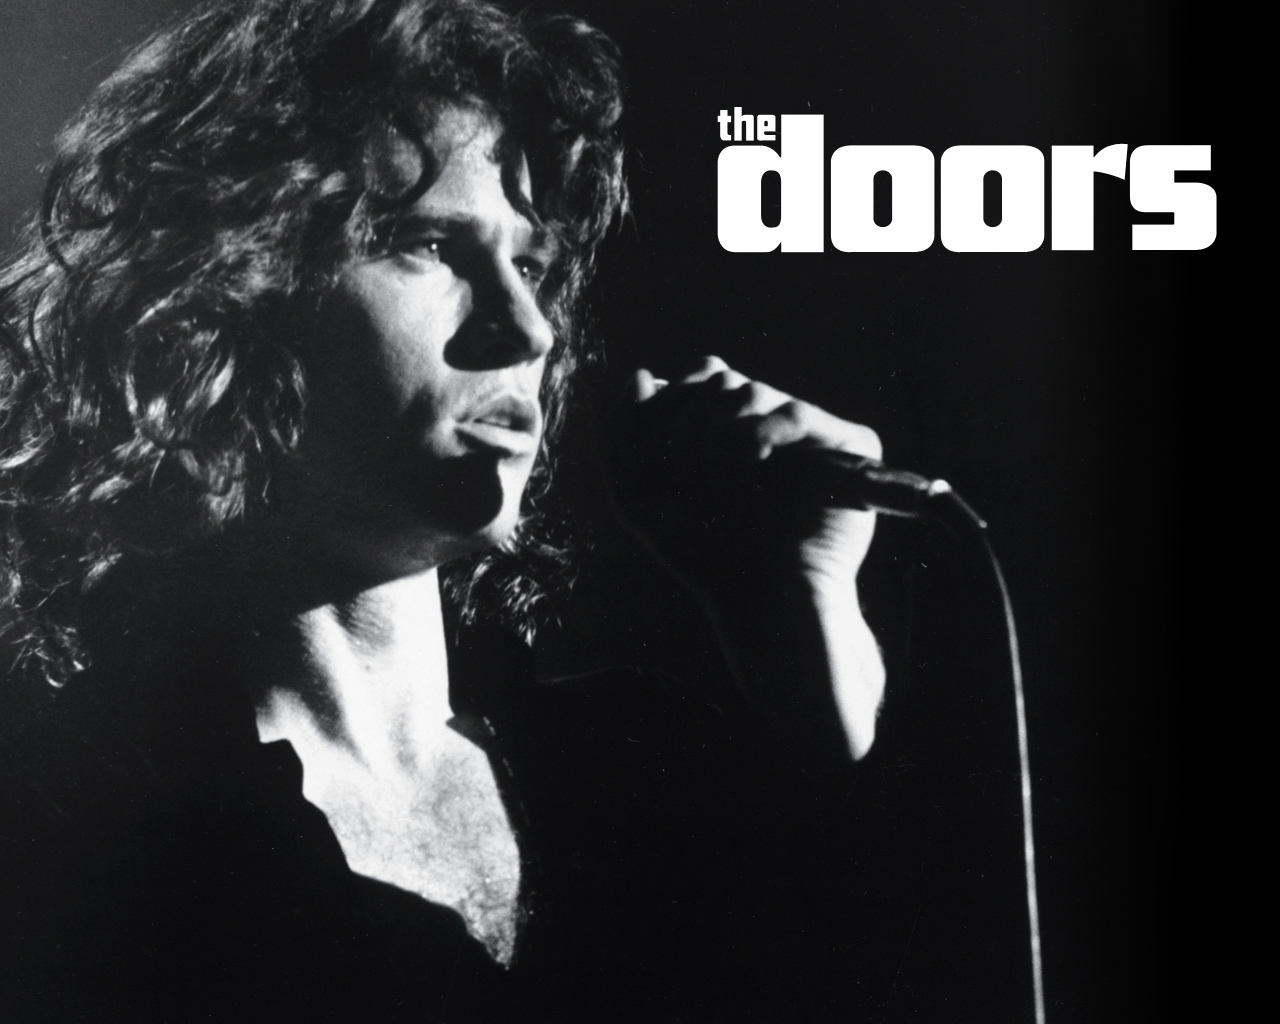 The Doors Wallpaper Downloads Directory Photo And 1280x1024